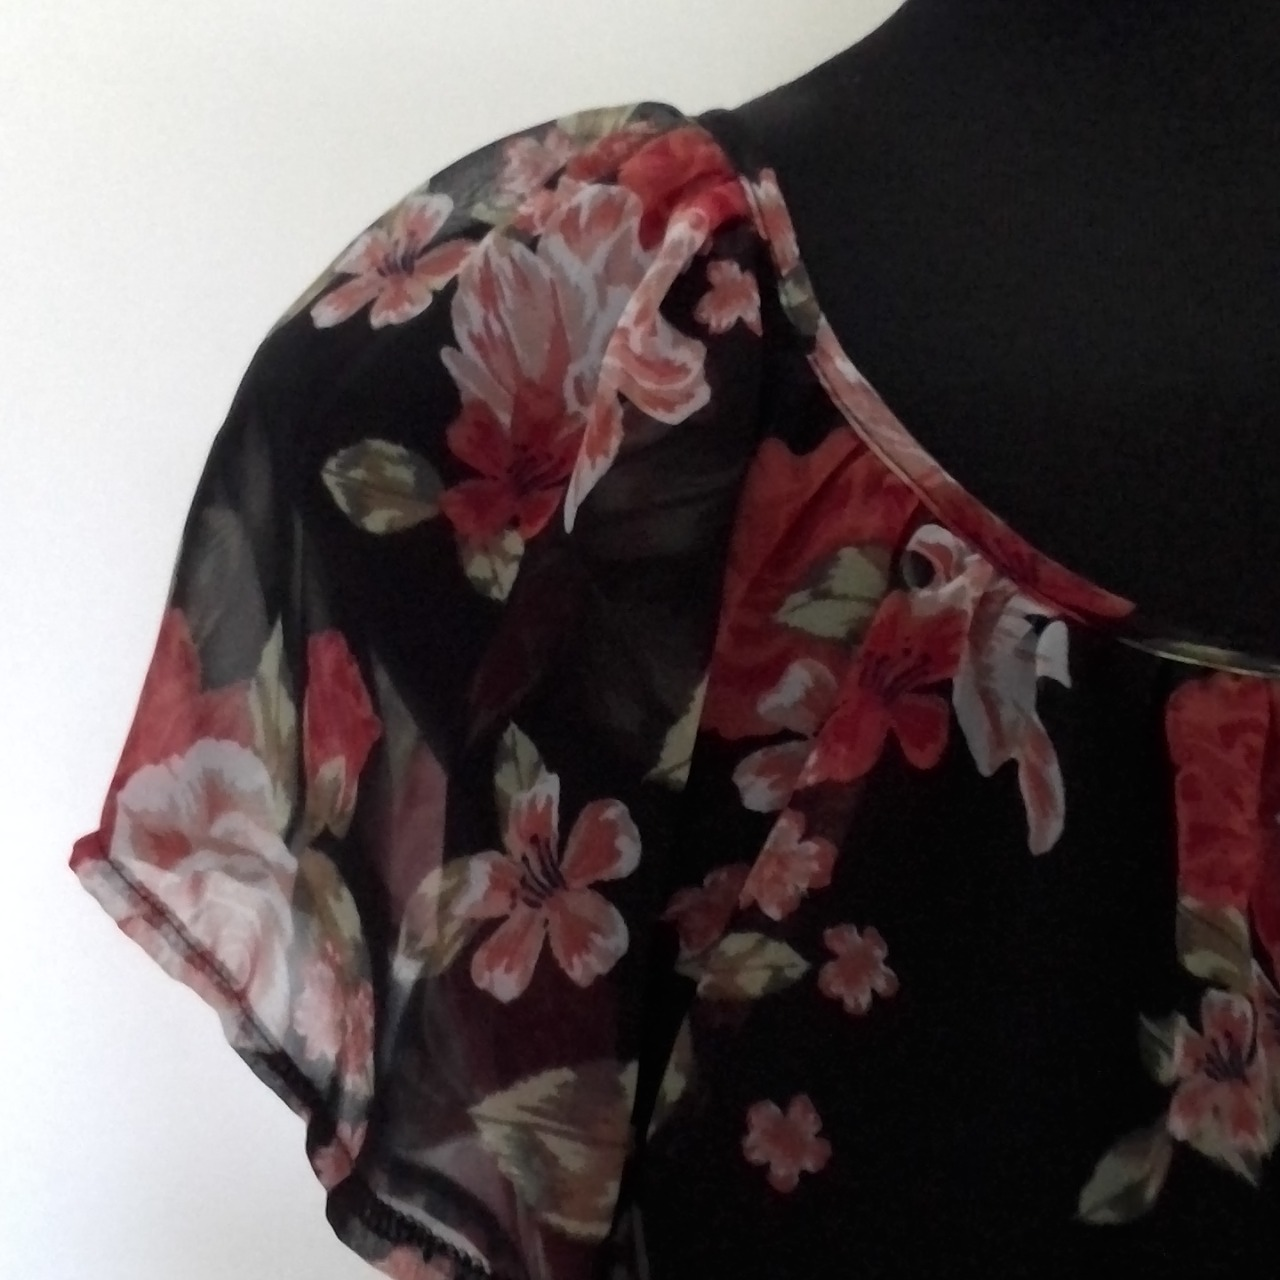 Womens TOKITO PRETTY SUMMER  FLORAL DRESS Size 10 Cocktail Dress/Mini Dress/Party Dress Black /Floral